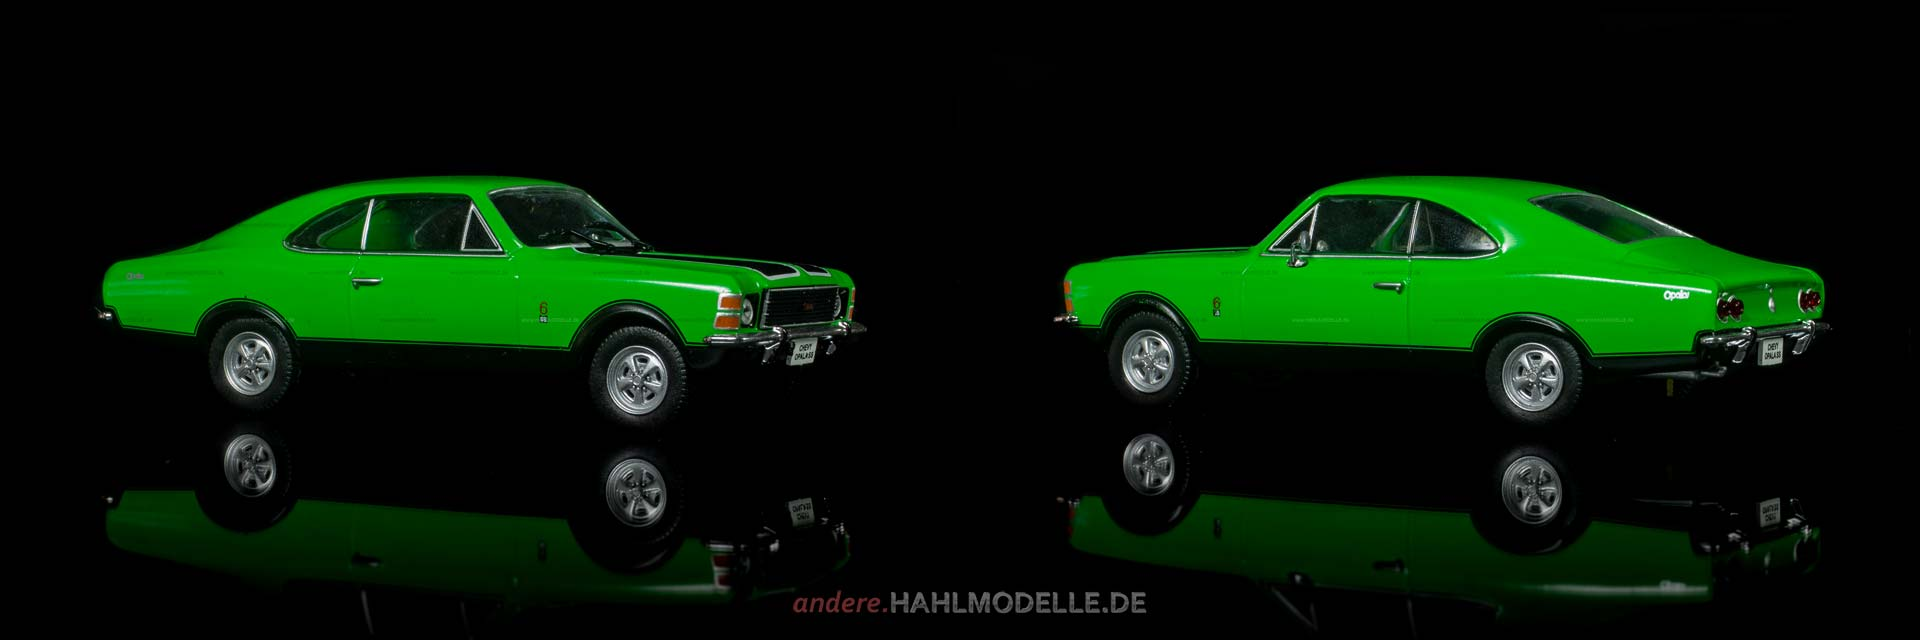 Chevrolet Opala SS | Coupé | Ixo (Opel Collection von Eaglemoss) | 1:43 | www.andere.hahlmodelle.de